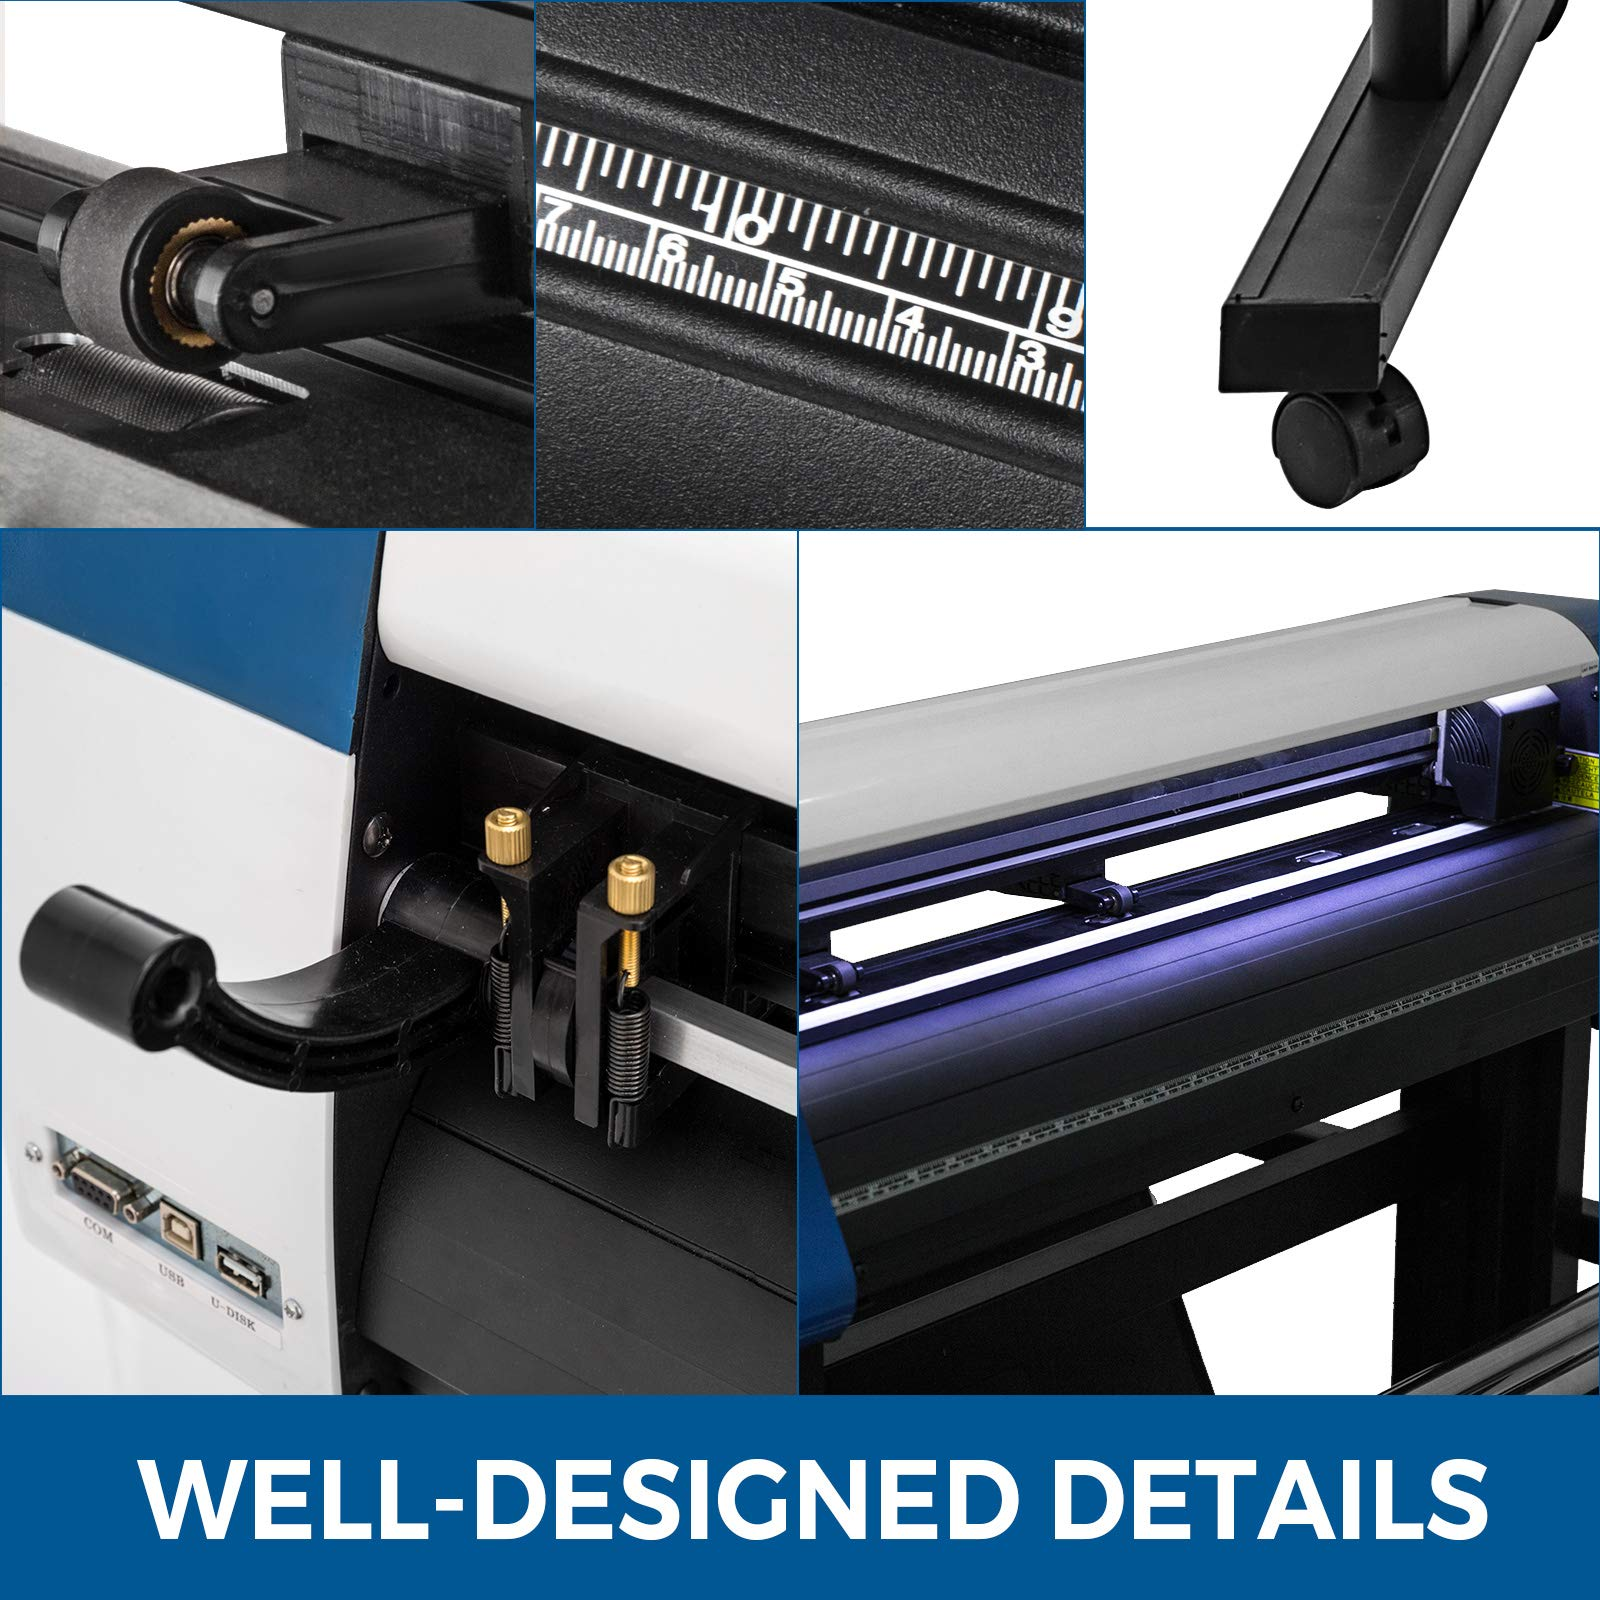 VEVOR Vinyl Cutter 28 inch Vinyl Cutter Machine Semi-Automatic DIY Vinyl Printer Cutter Machine Manual Positioning Sign Cutting with Floor Stand Signmaster Software by VEVOR (Image #6)